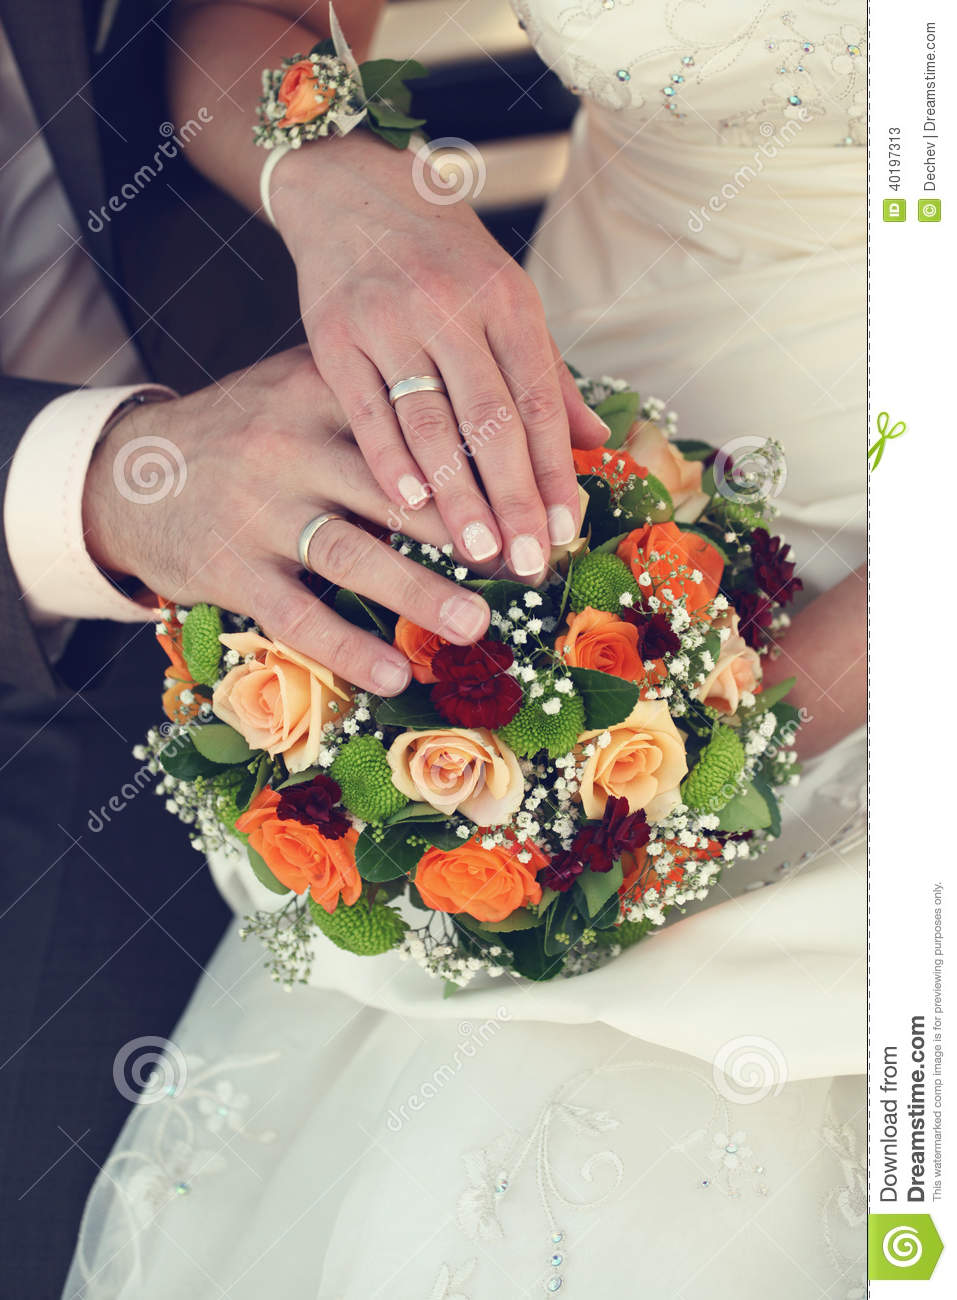 Bride And Groom Wedding Rings: Bride And Groom's Hands With Wedding Rings And Bouquet